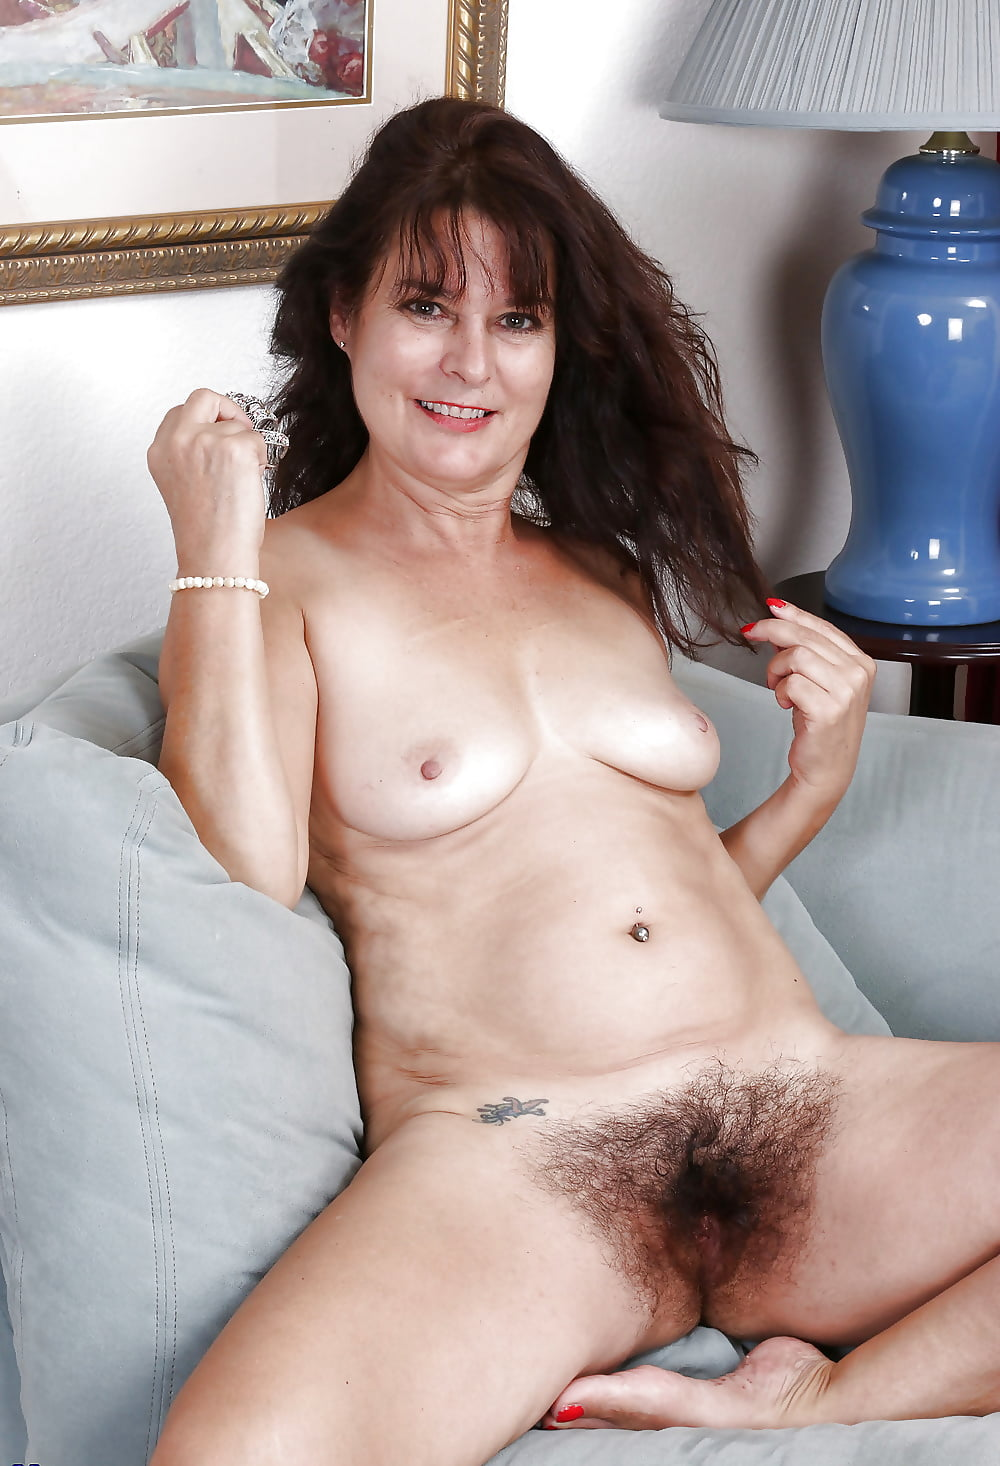 Native american indian hairy pussy pics